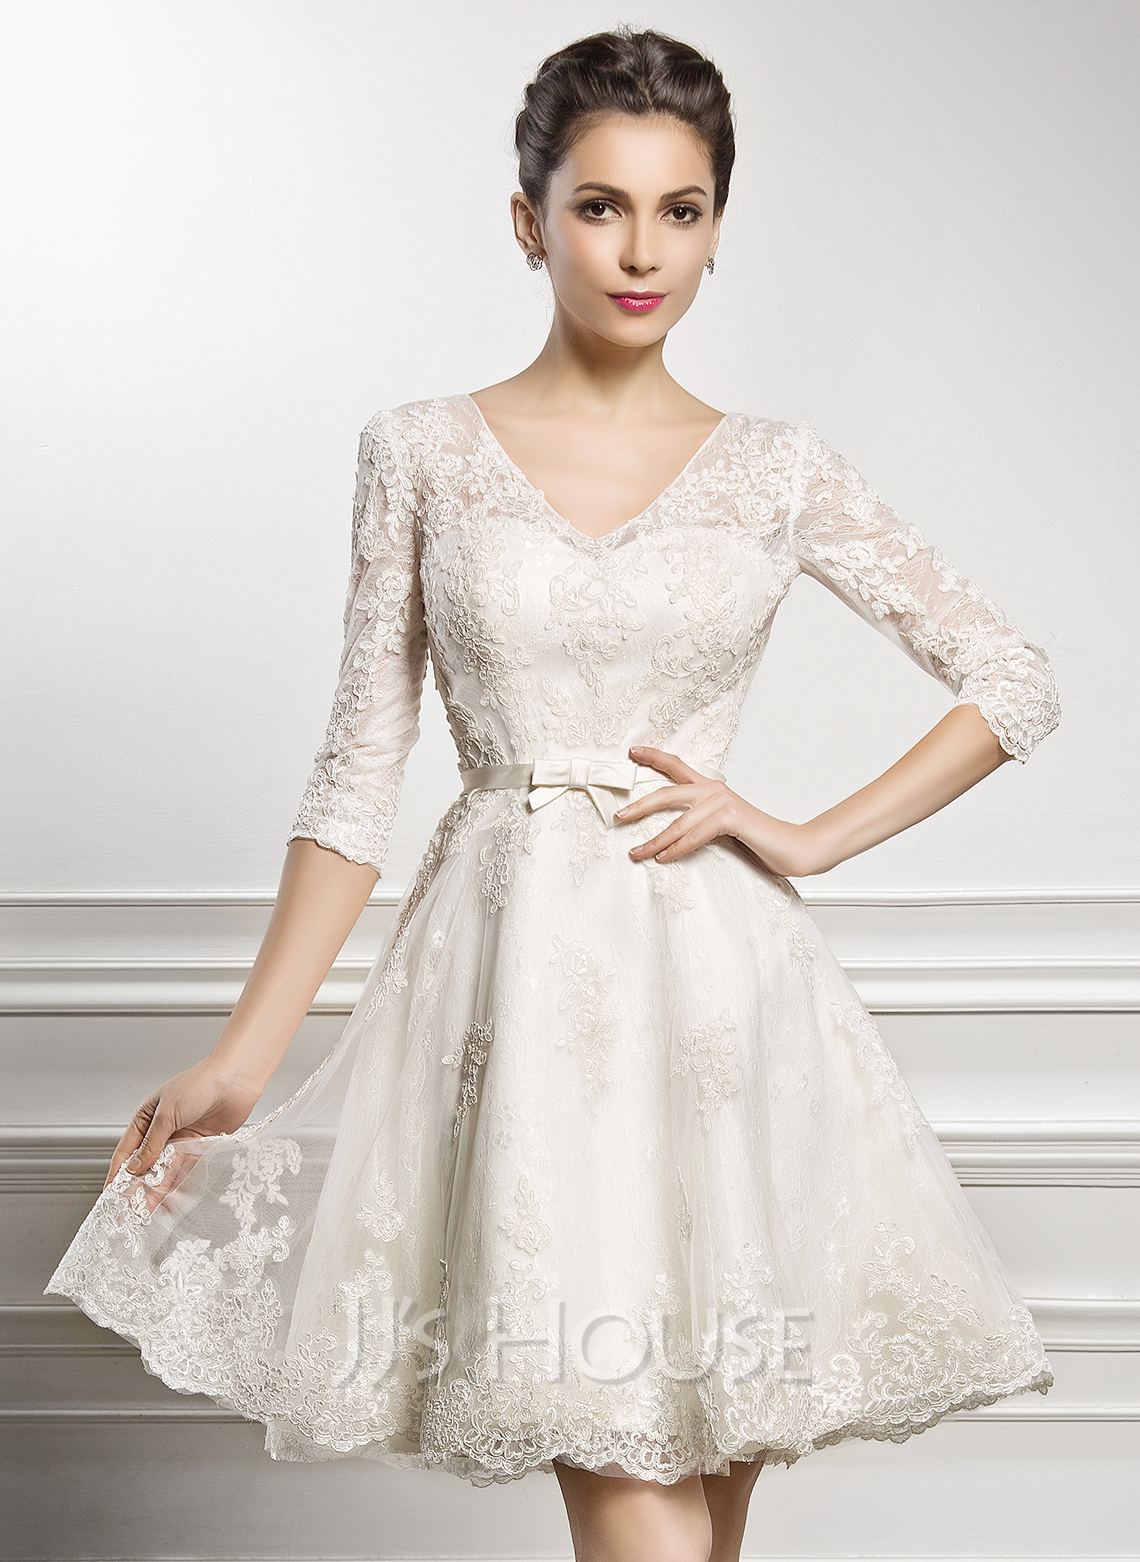 f96324c2bb A-Line Princess V-neck Knee-Length Lace Wedding Dress With Bow. Loading zoom